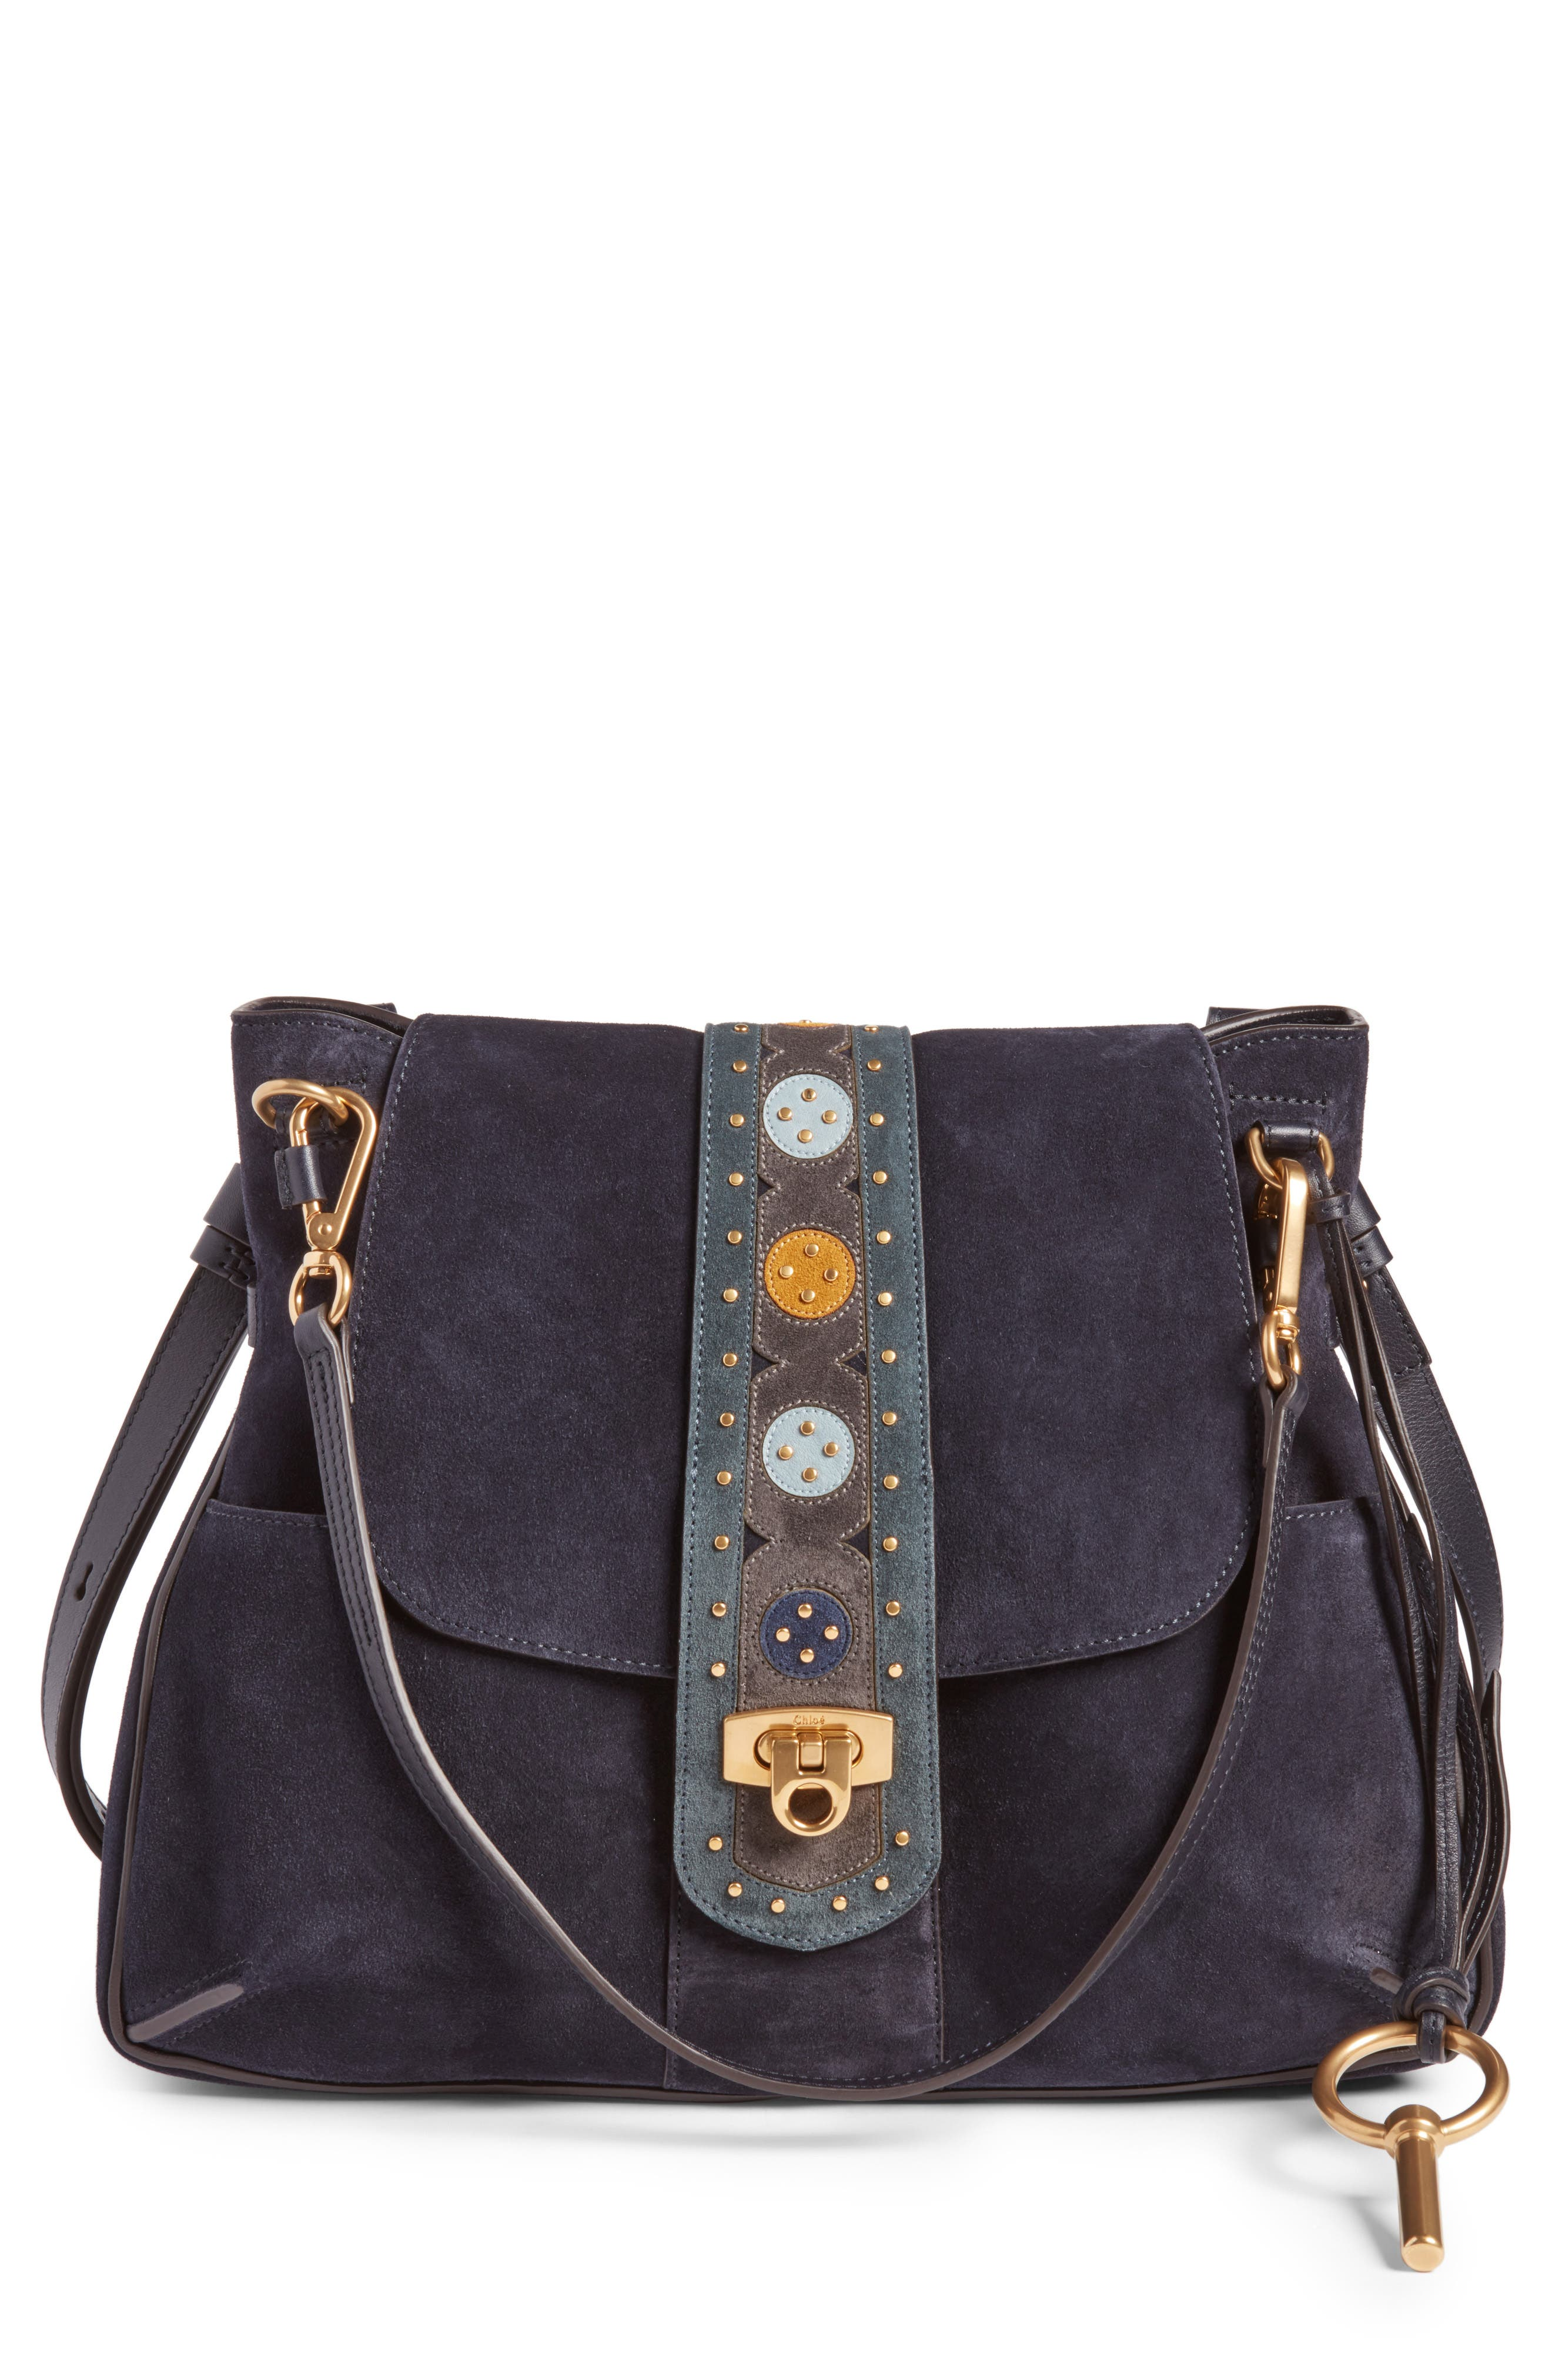 Alternate Image 1 Selected - Chloé Medium Lexa Suede Shoulder Bag